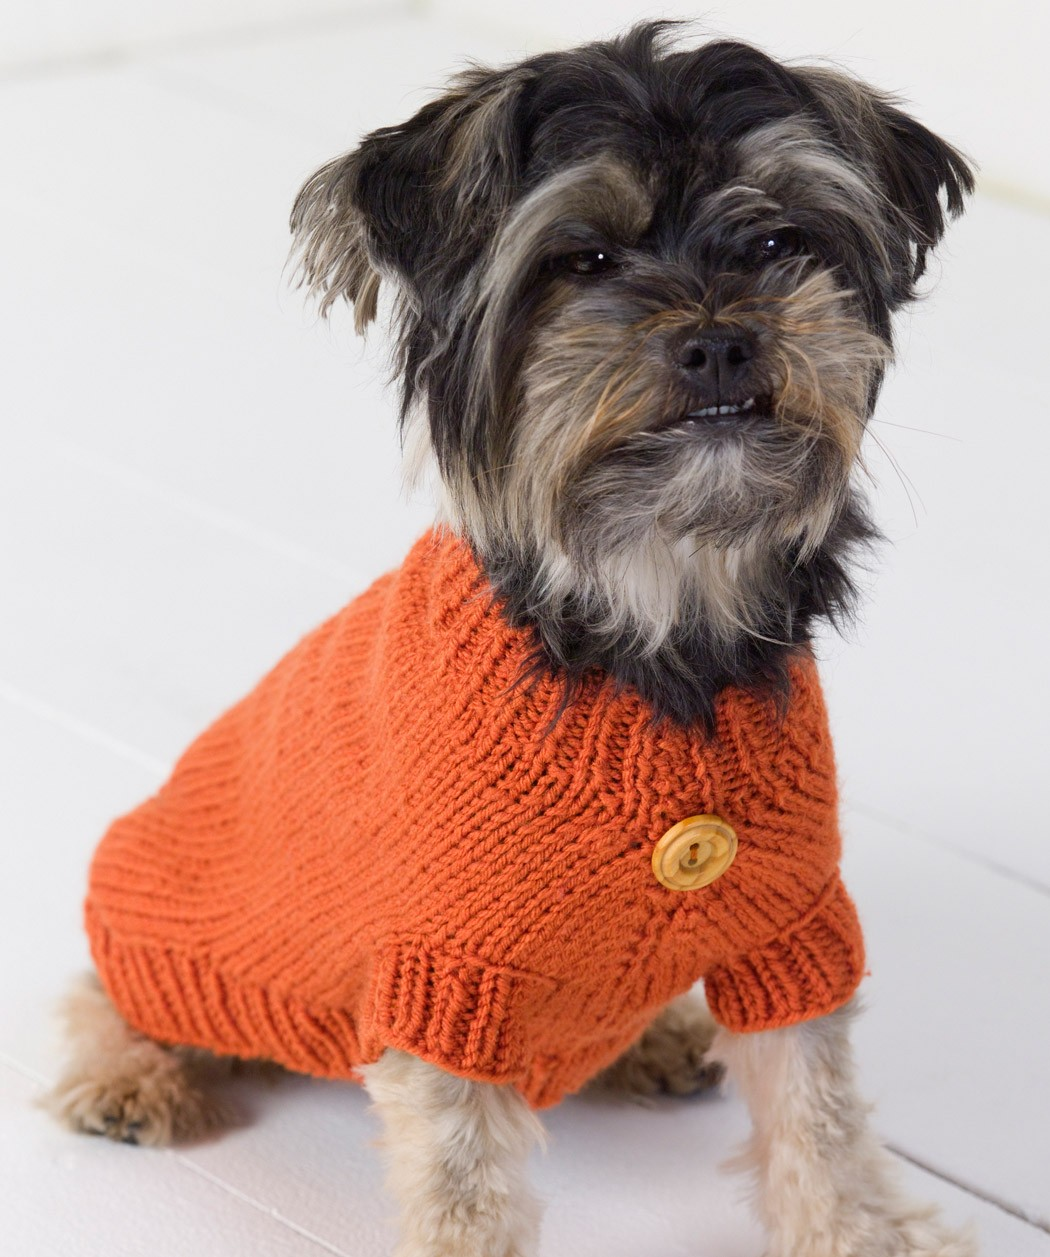 Knitted Dog Coats Patterns Free : Dog Sweater Knitting Pattern A Knitting Blog